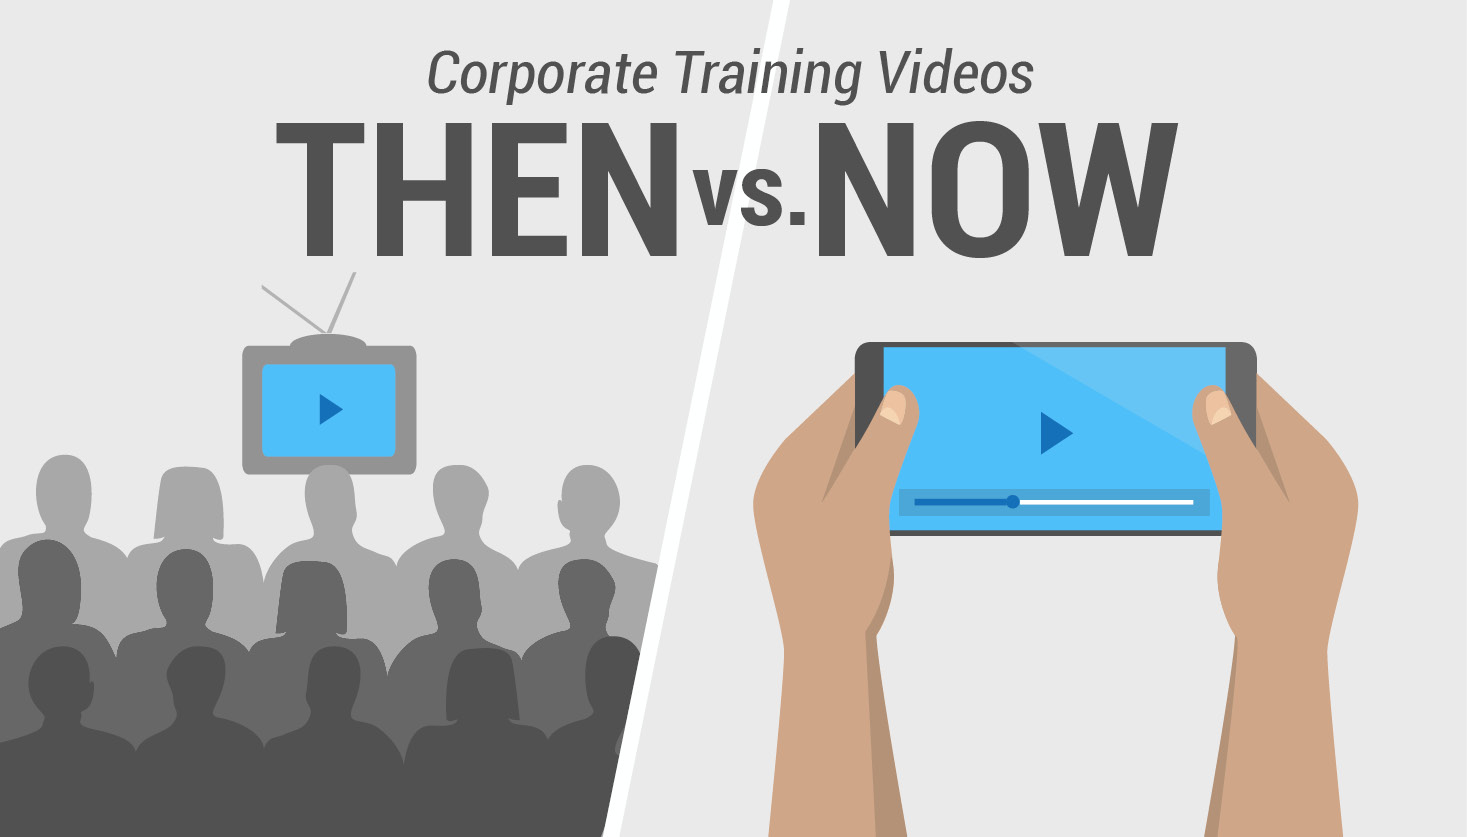 Graphic of corporate training videos in the past vs today. On the left is a TV with multiple employees watching. On the right is a smart phone with the video while one employee watches.